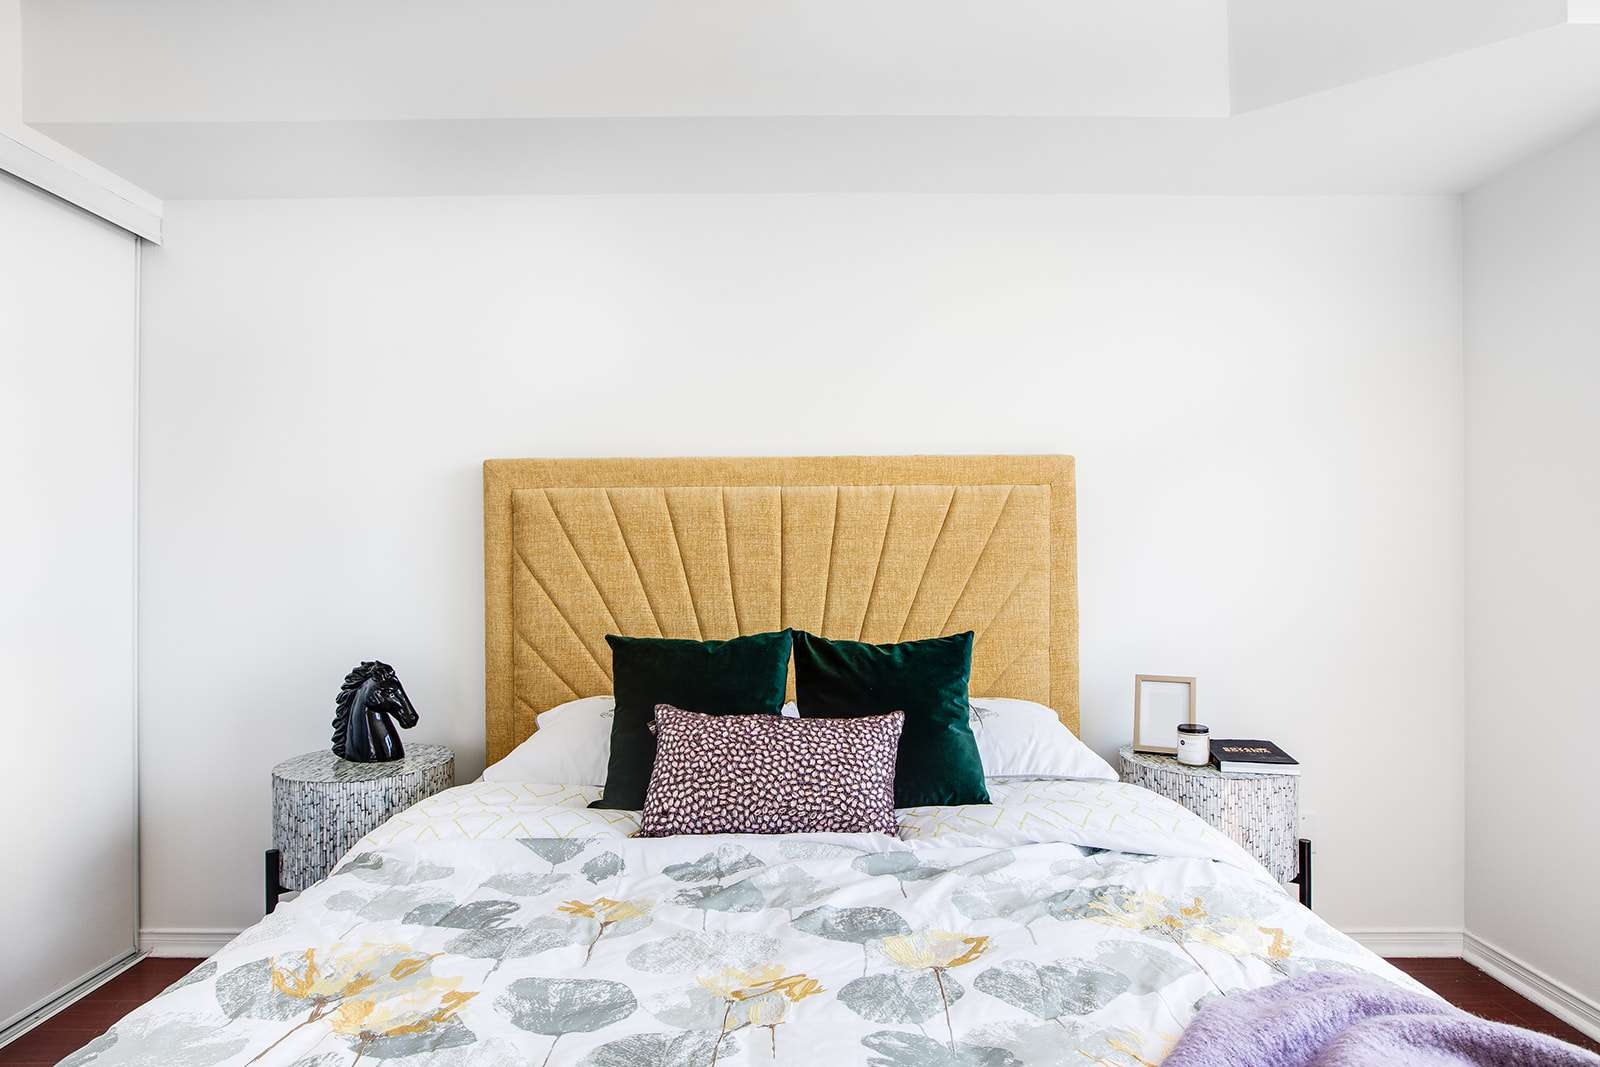 Bedroom with bright yellow headboard and purple accents